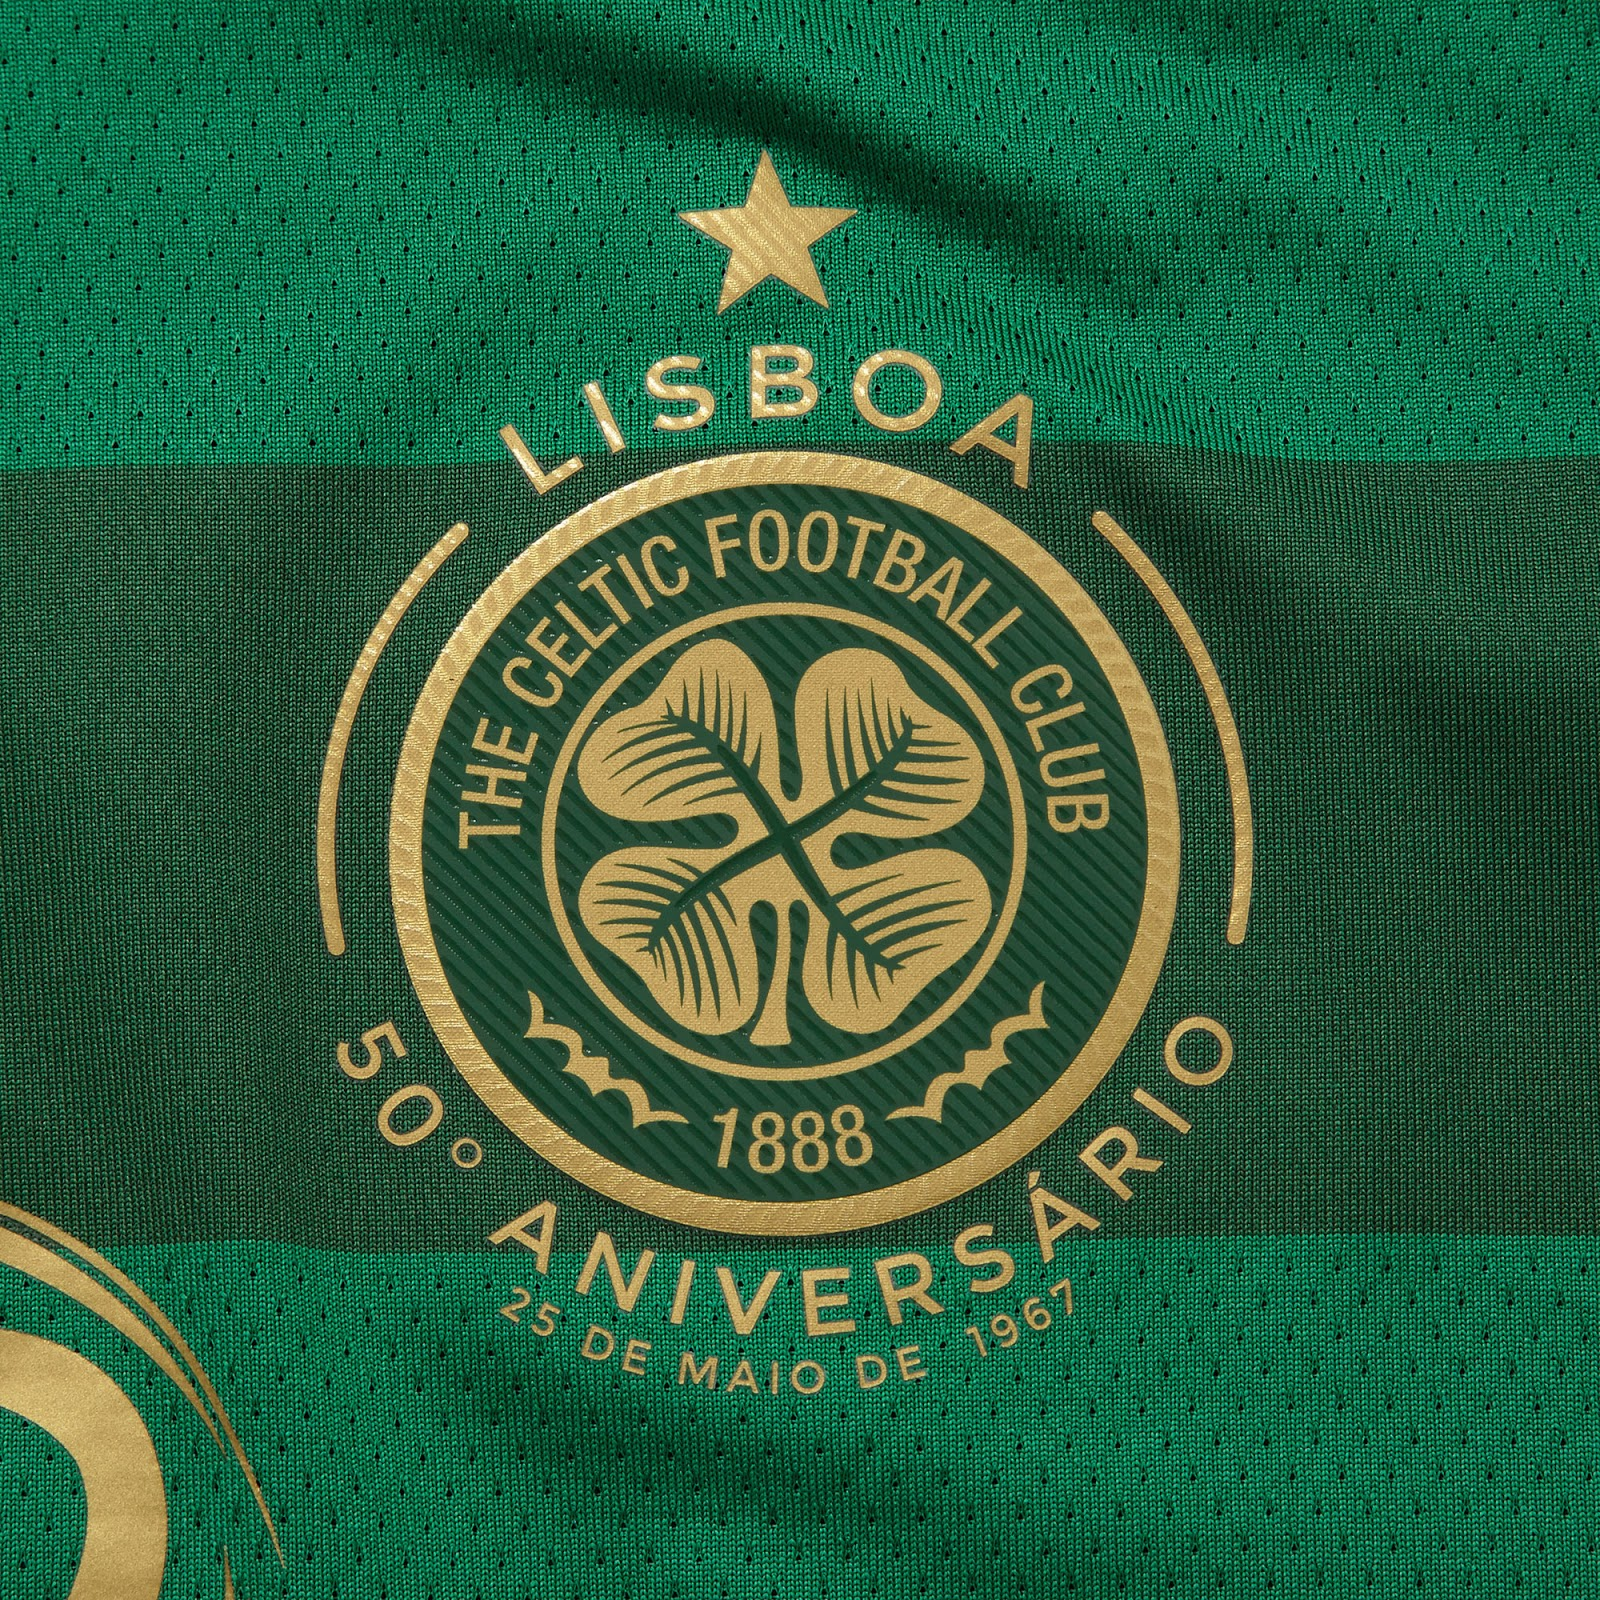 celtic-17-18-away-kit-crest